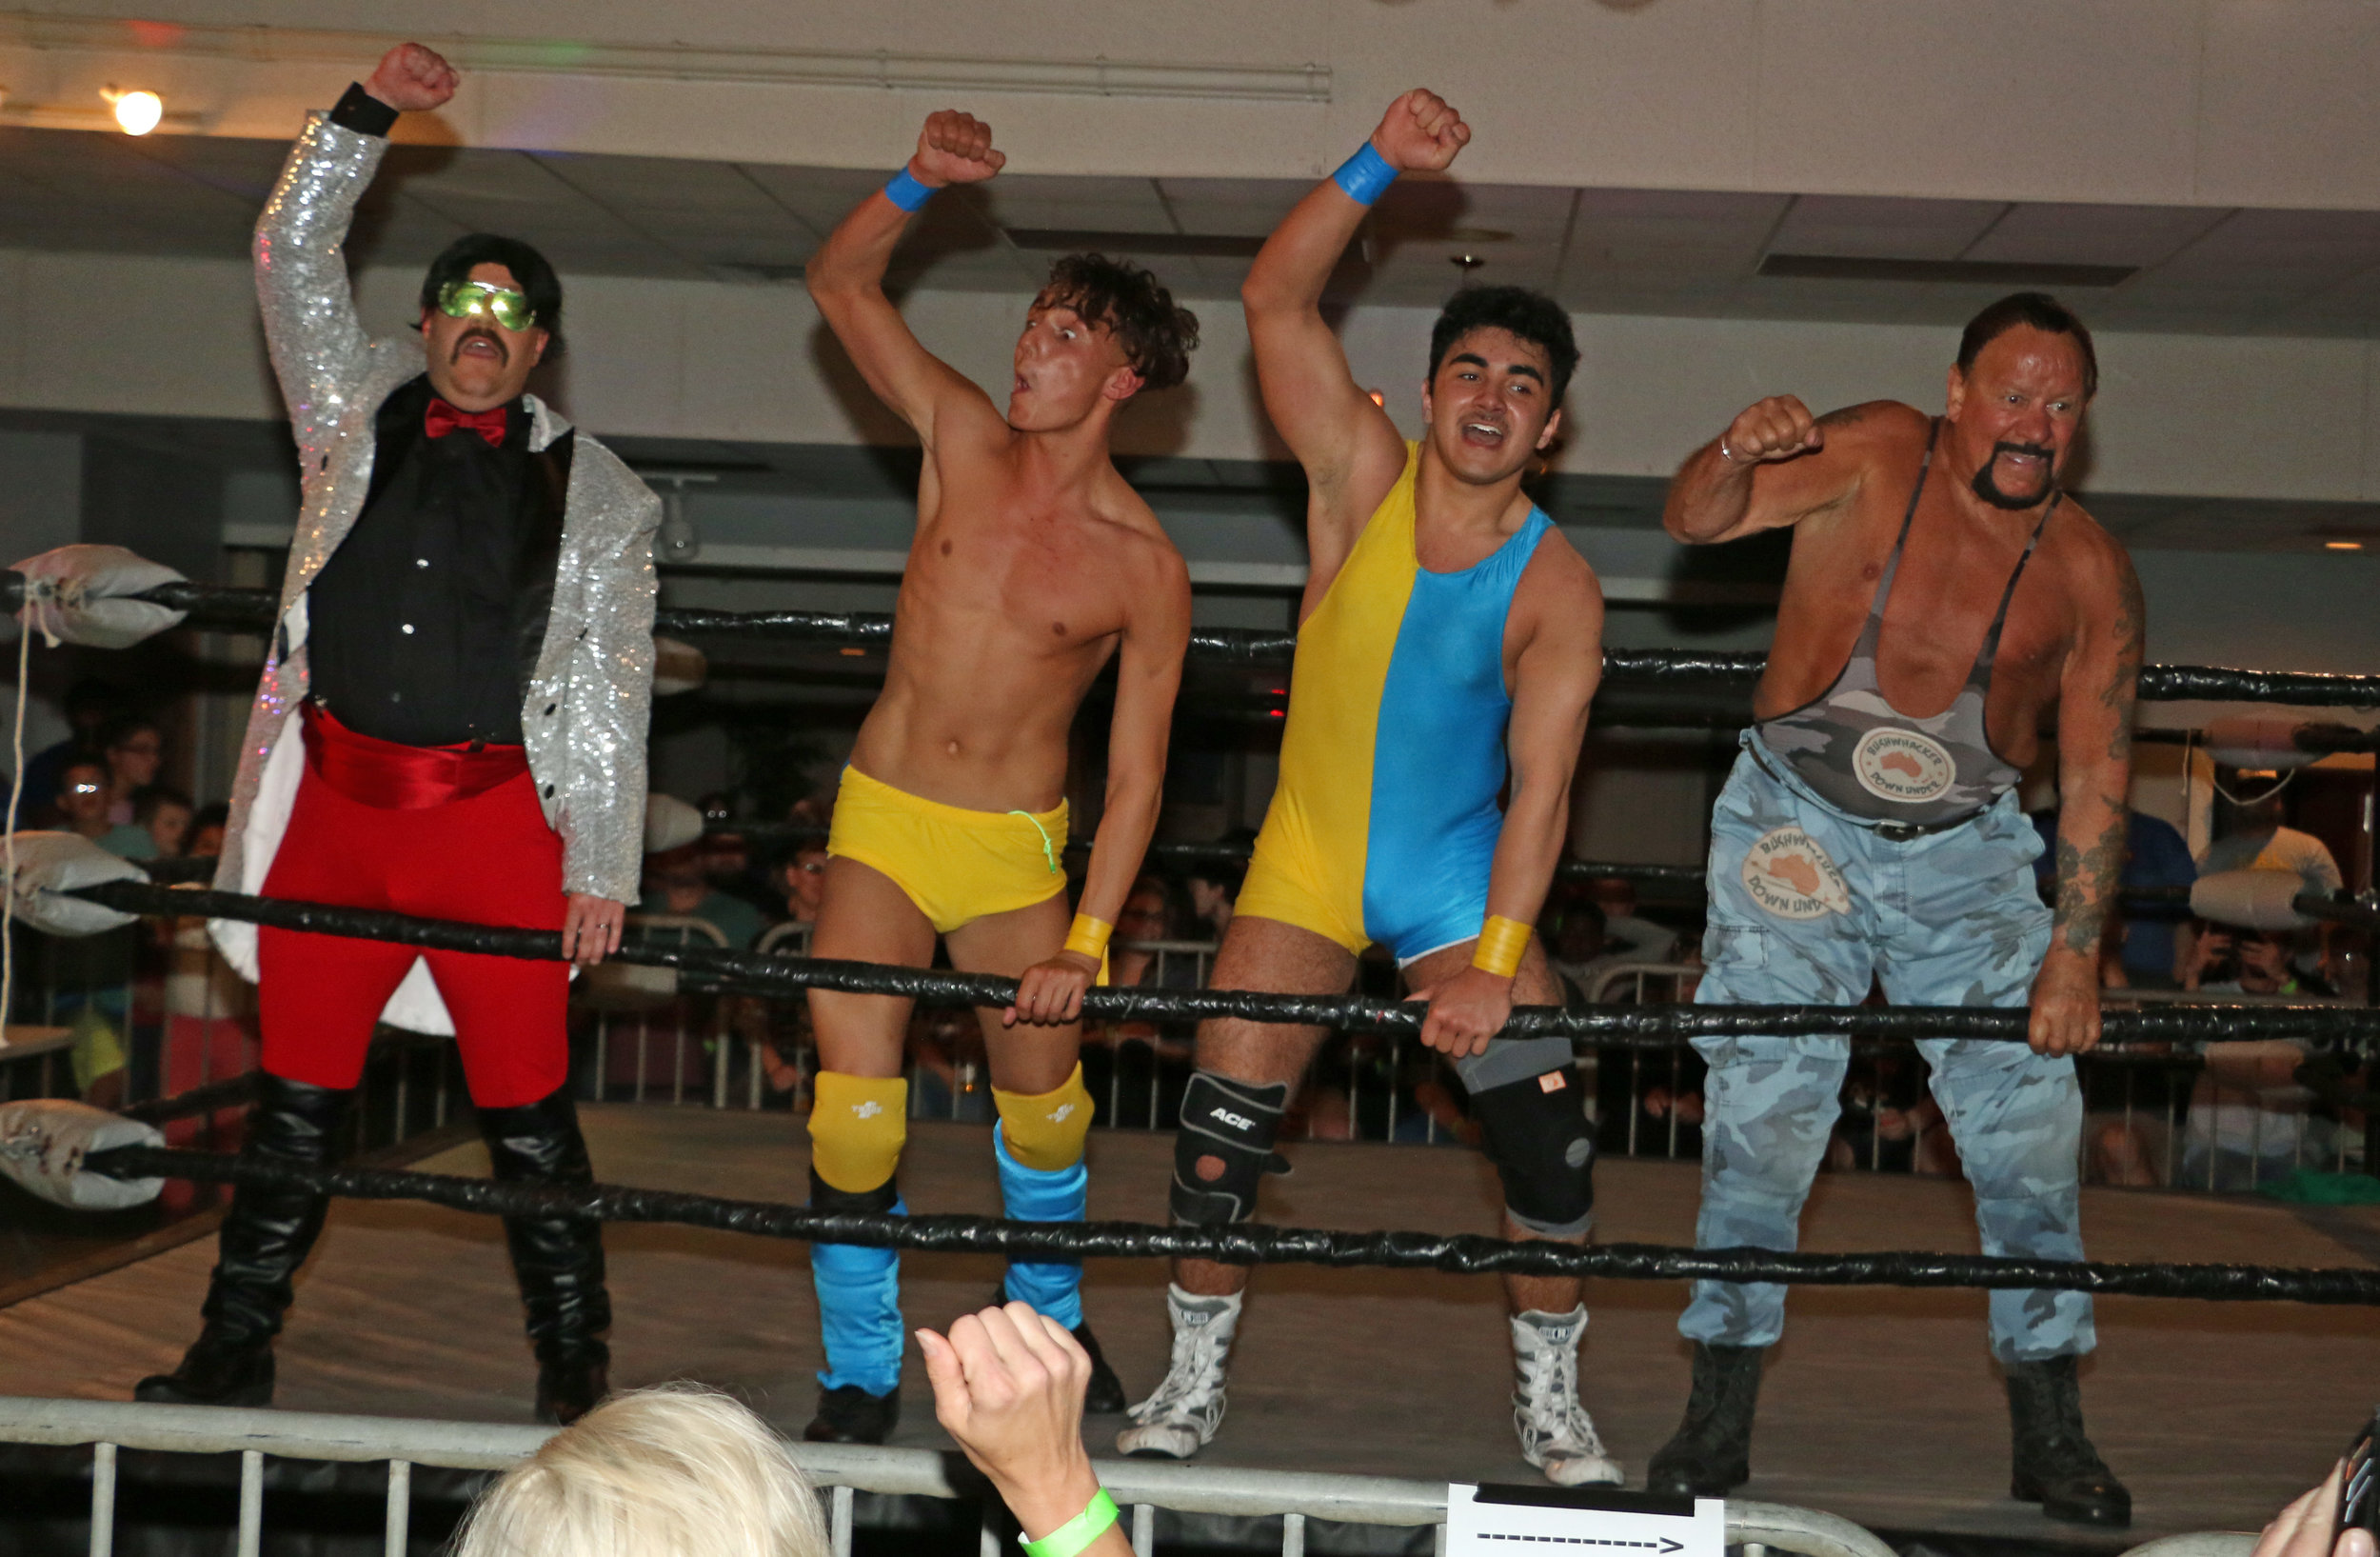 Manager Sidney Bakabella, from left, Jordan Kross, Kal Herro and WWE Hall of Famer Bushwhacker Luke celebrate victory at Sunday's SSW/SNS SuperShow 2 in Kenosha, Wis.  (Photo by Mike Pankow)